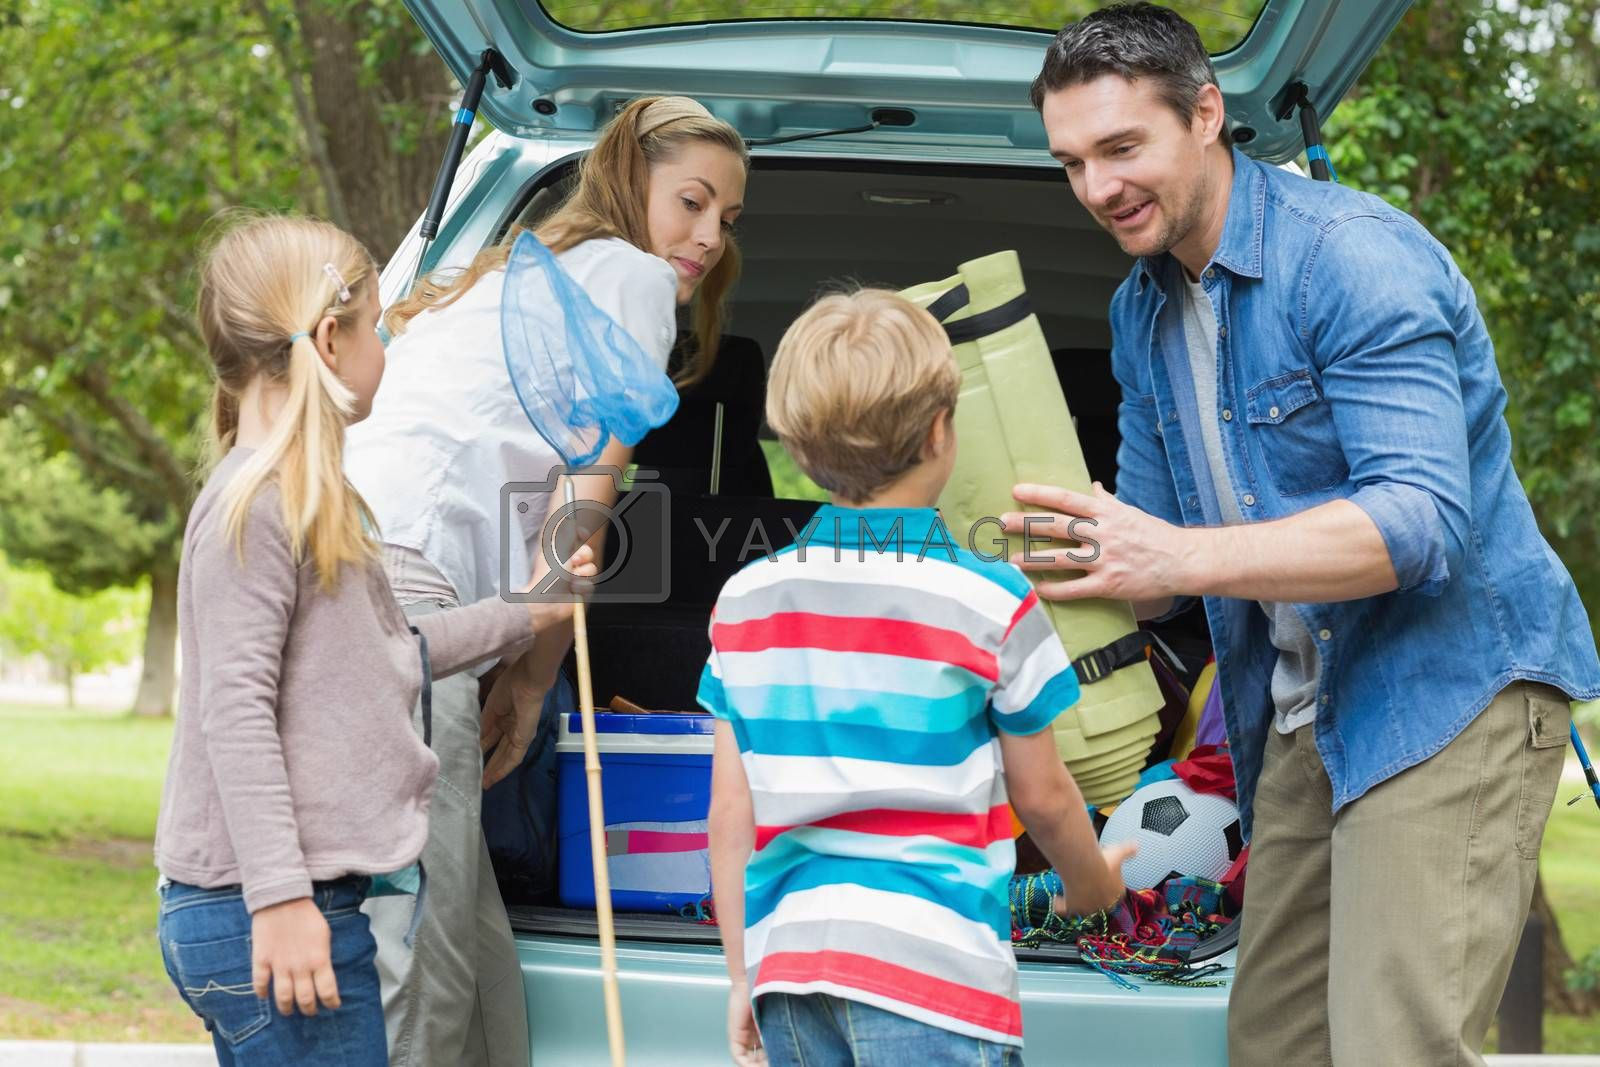 Happy family of four unloading car trunk while on picnic